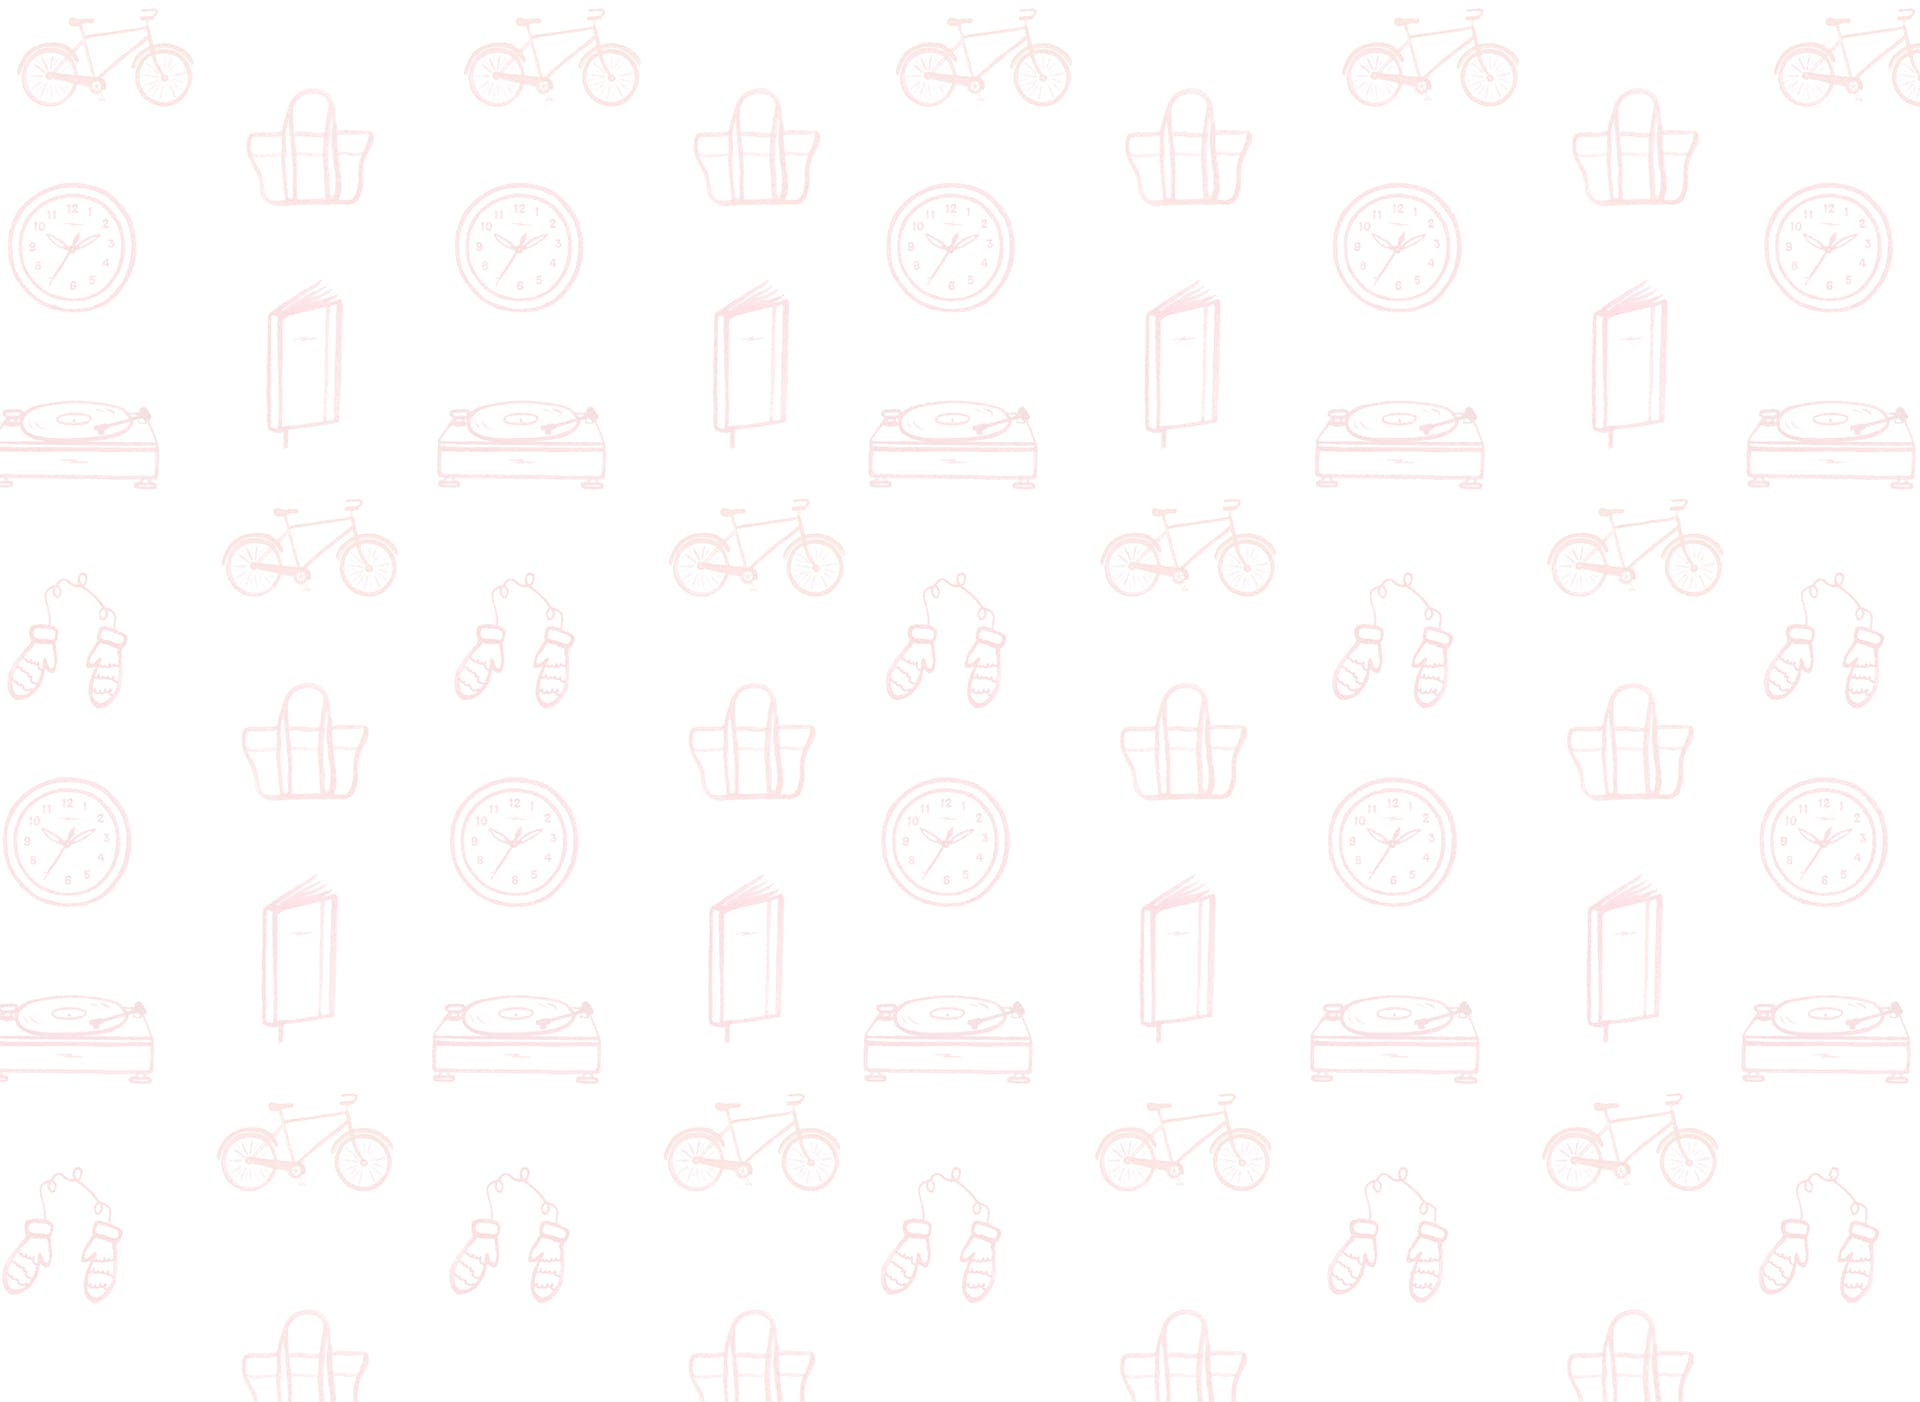 Wallpaper design with bikes, clocks, journals, turnatables and more